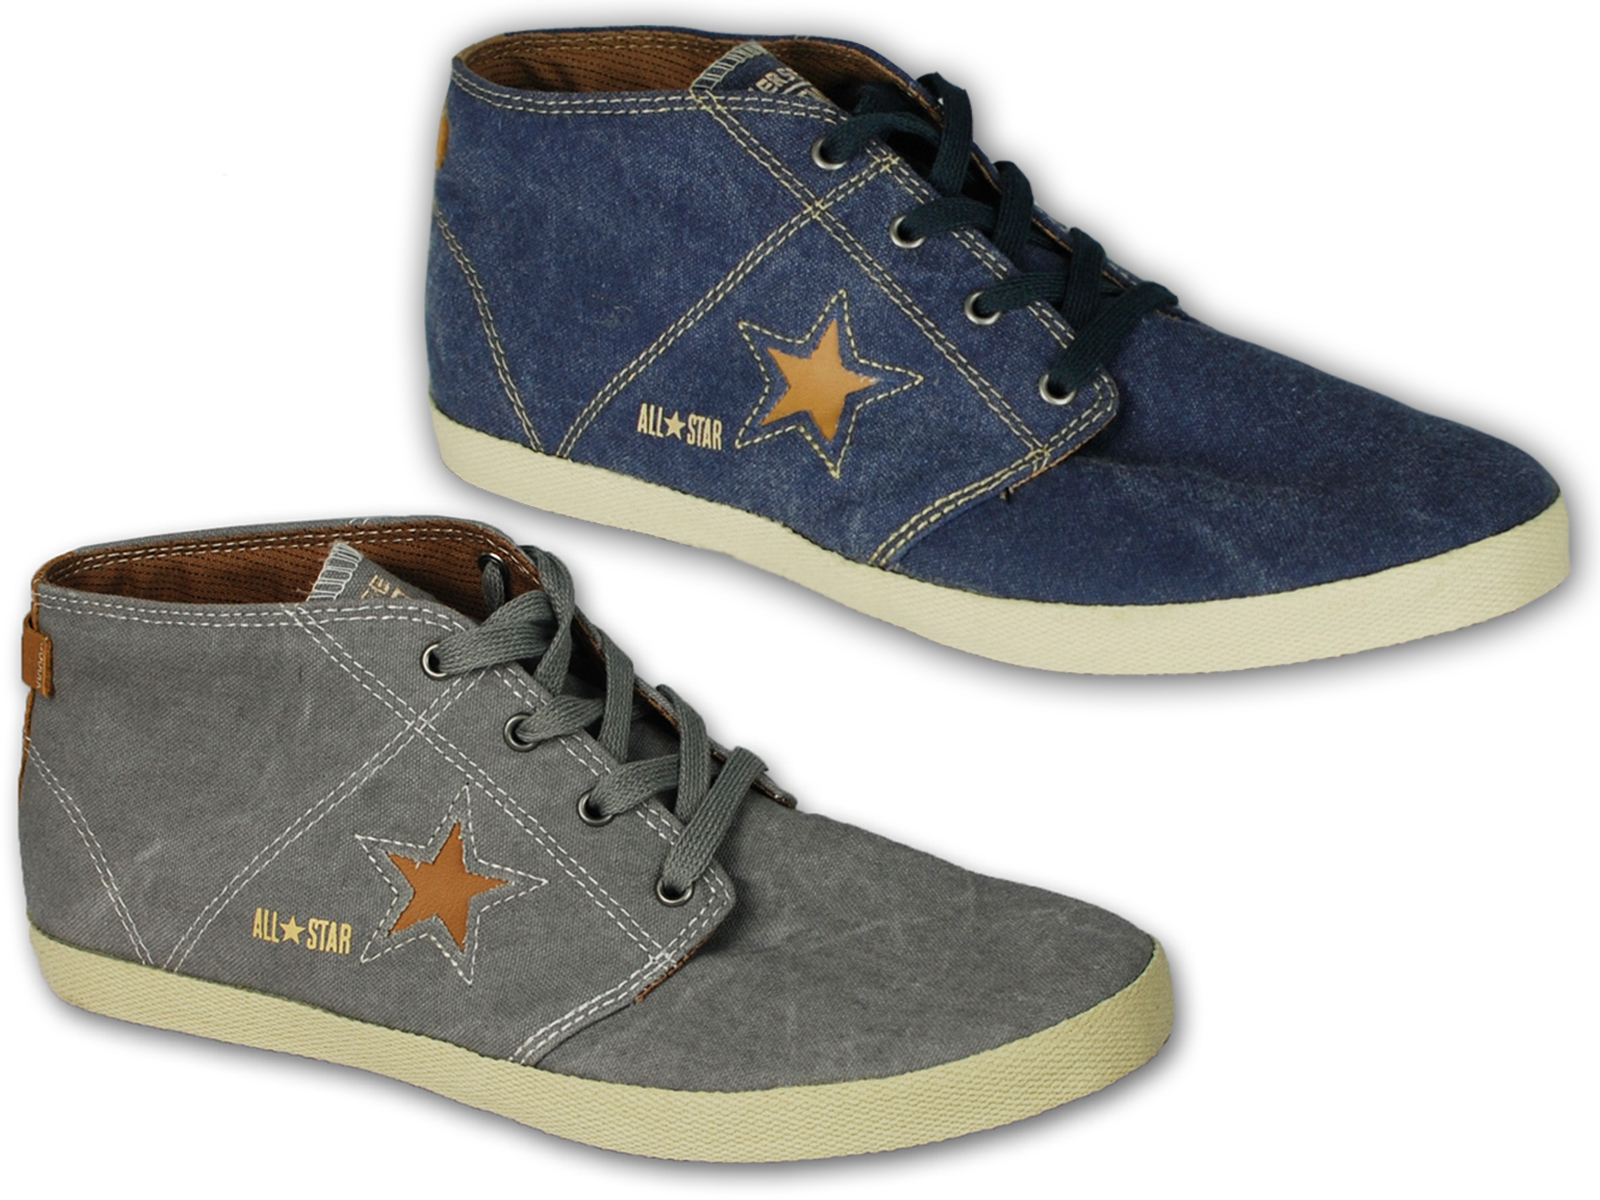 Uomo Pumps Converse Top Canvas All Star Hi Top Converse Trainers Schuhes Lace Up Casual New 3c3afa